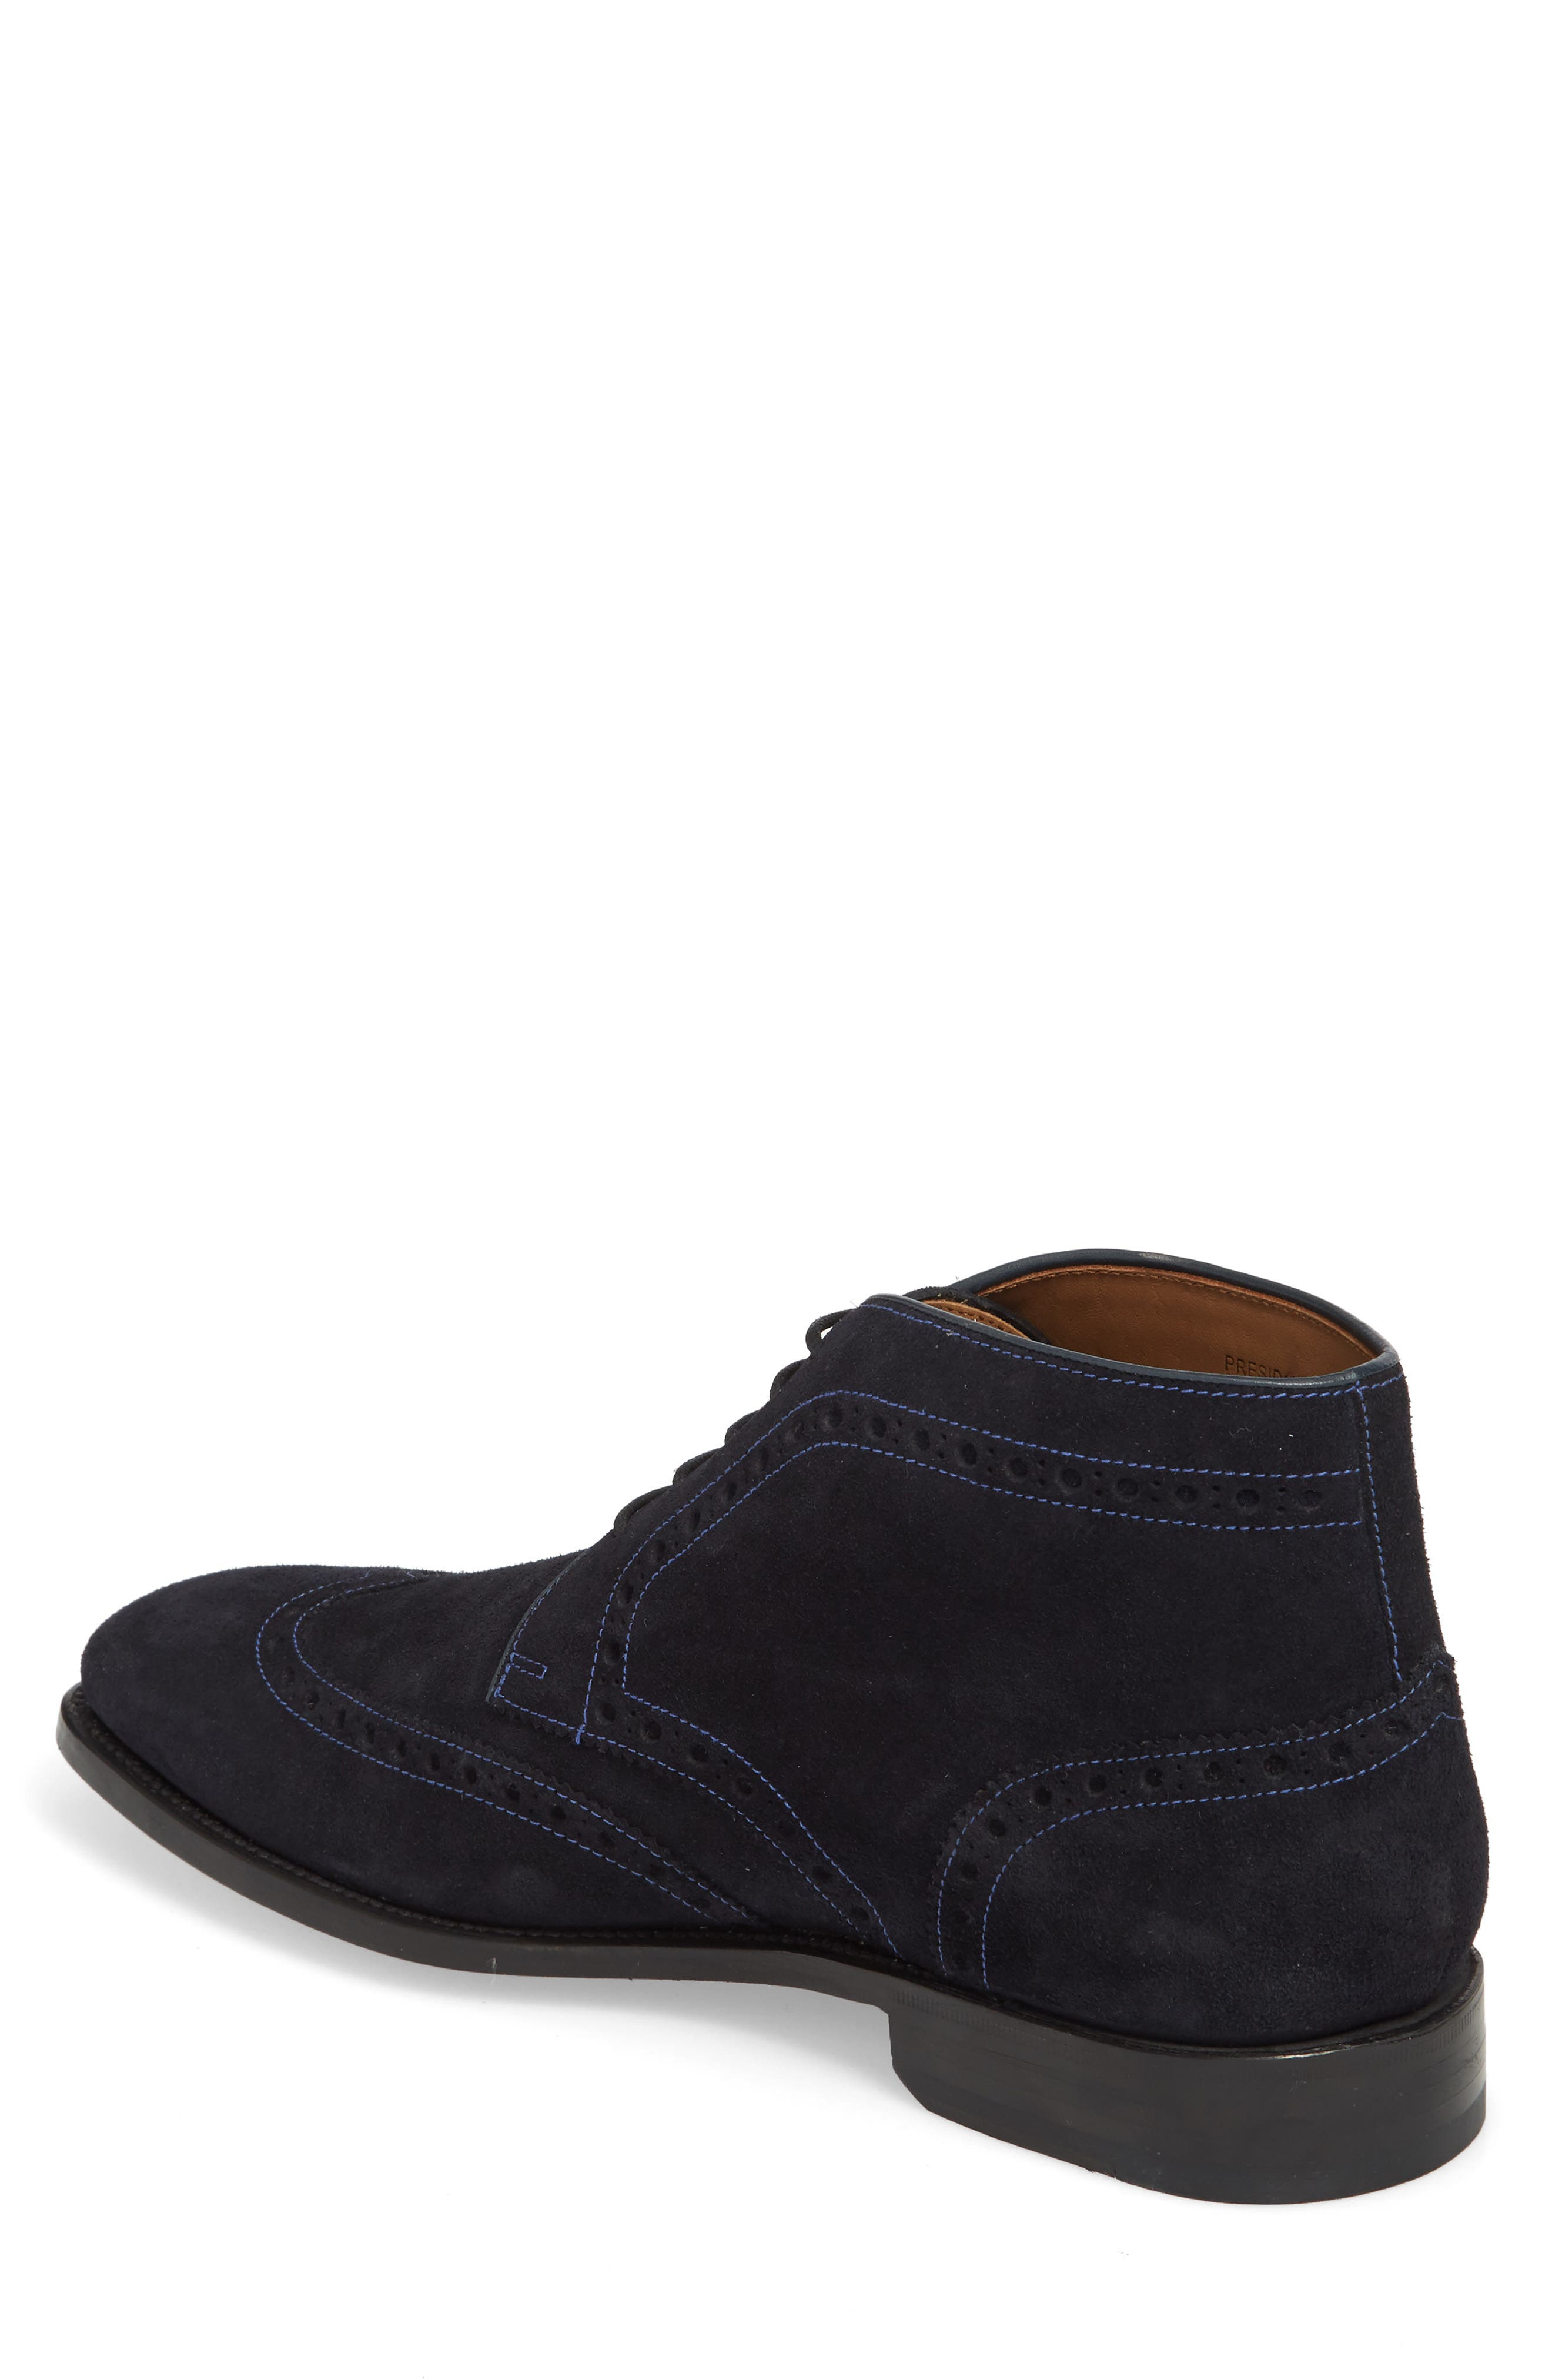 Presidio Wingtip Boot,                             Alternate thumbnail 2, color,                             NAVY